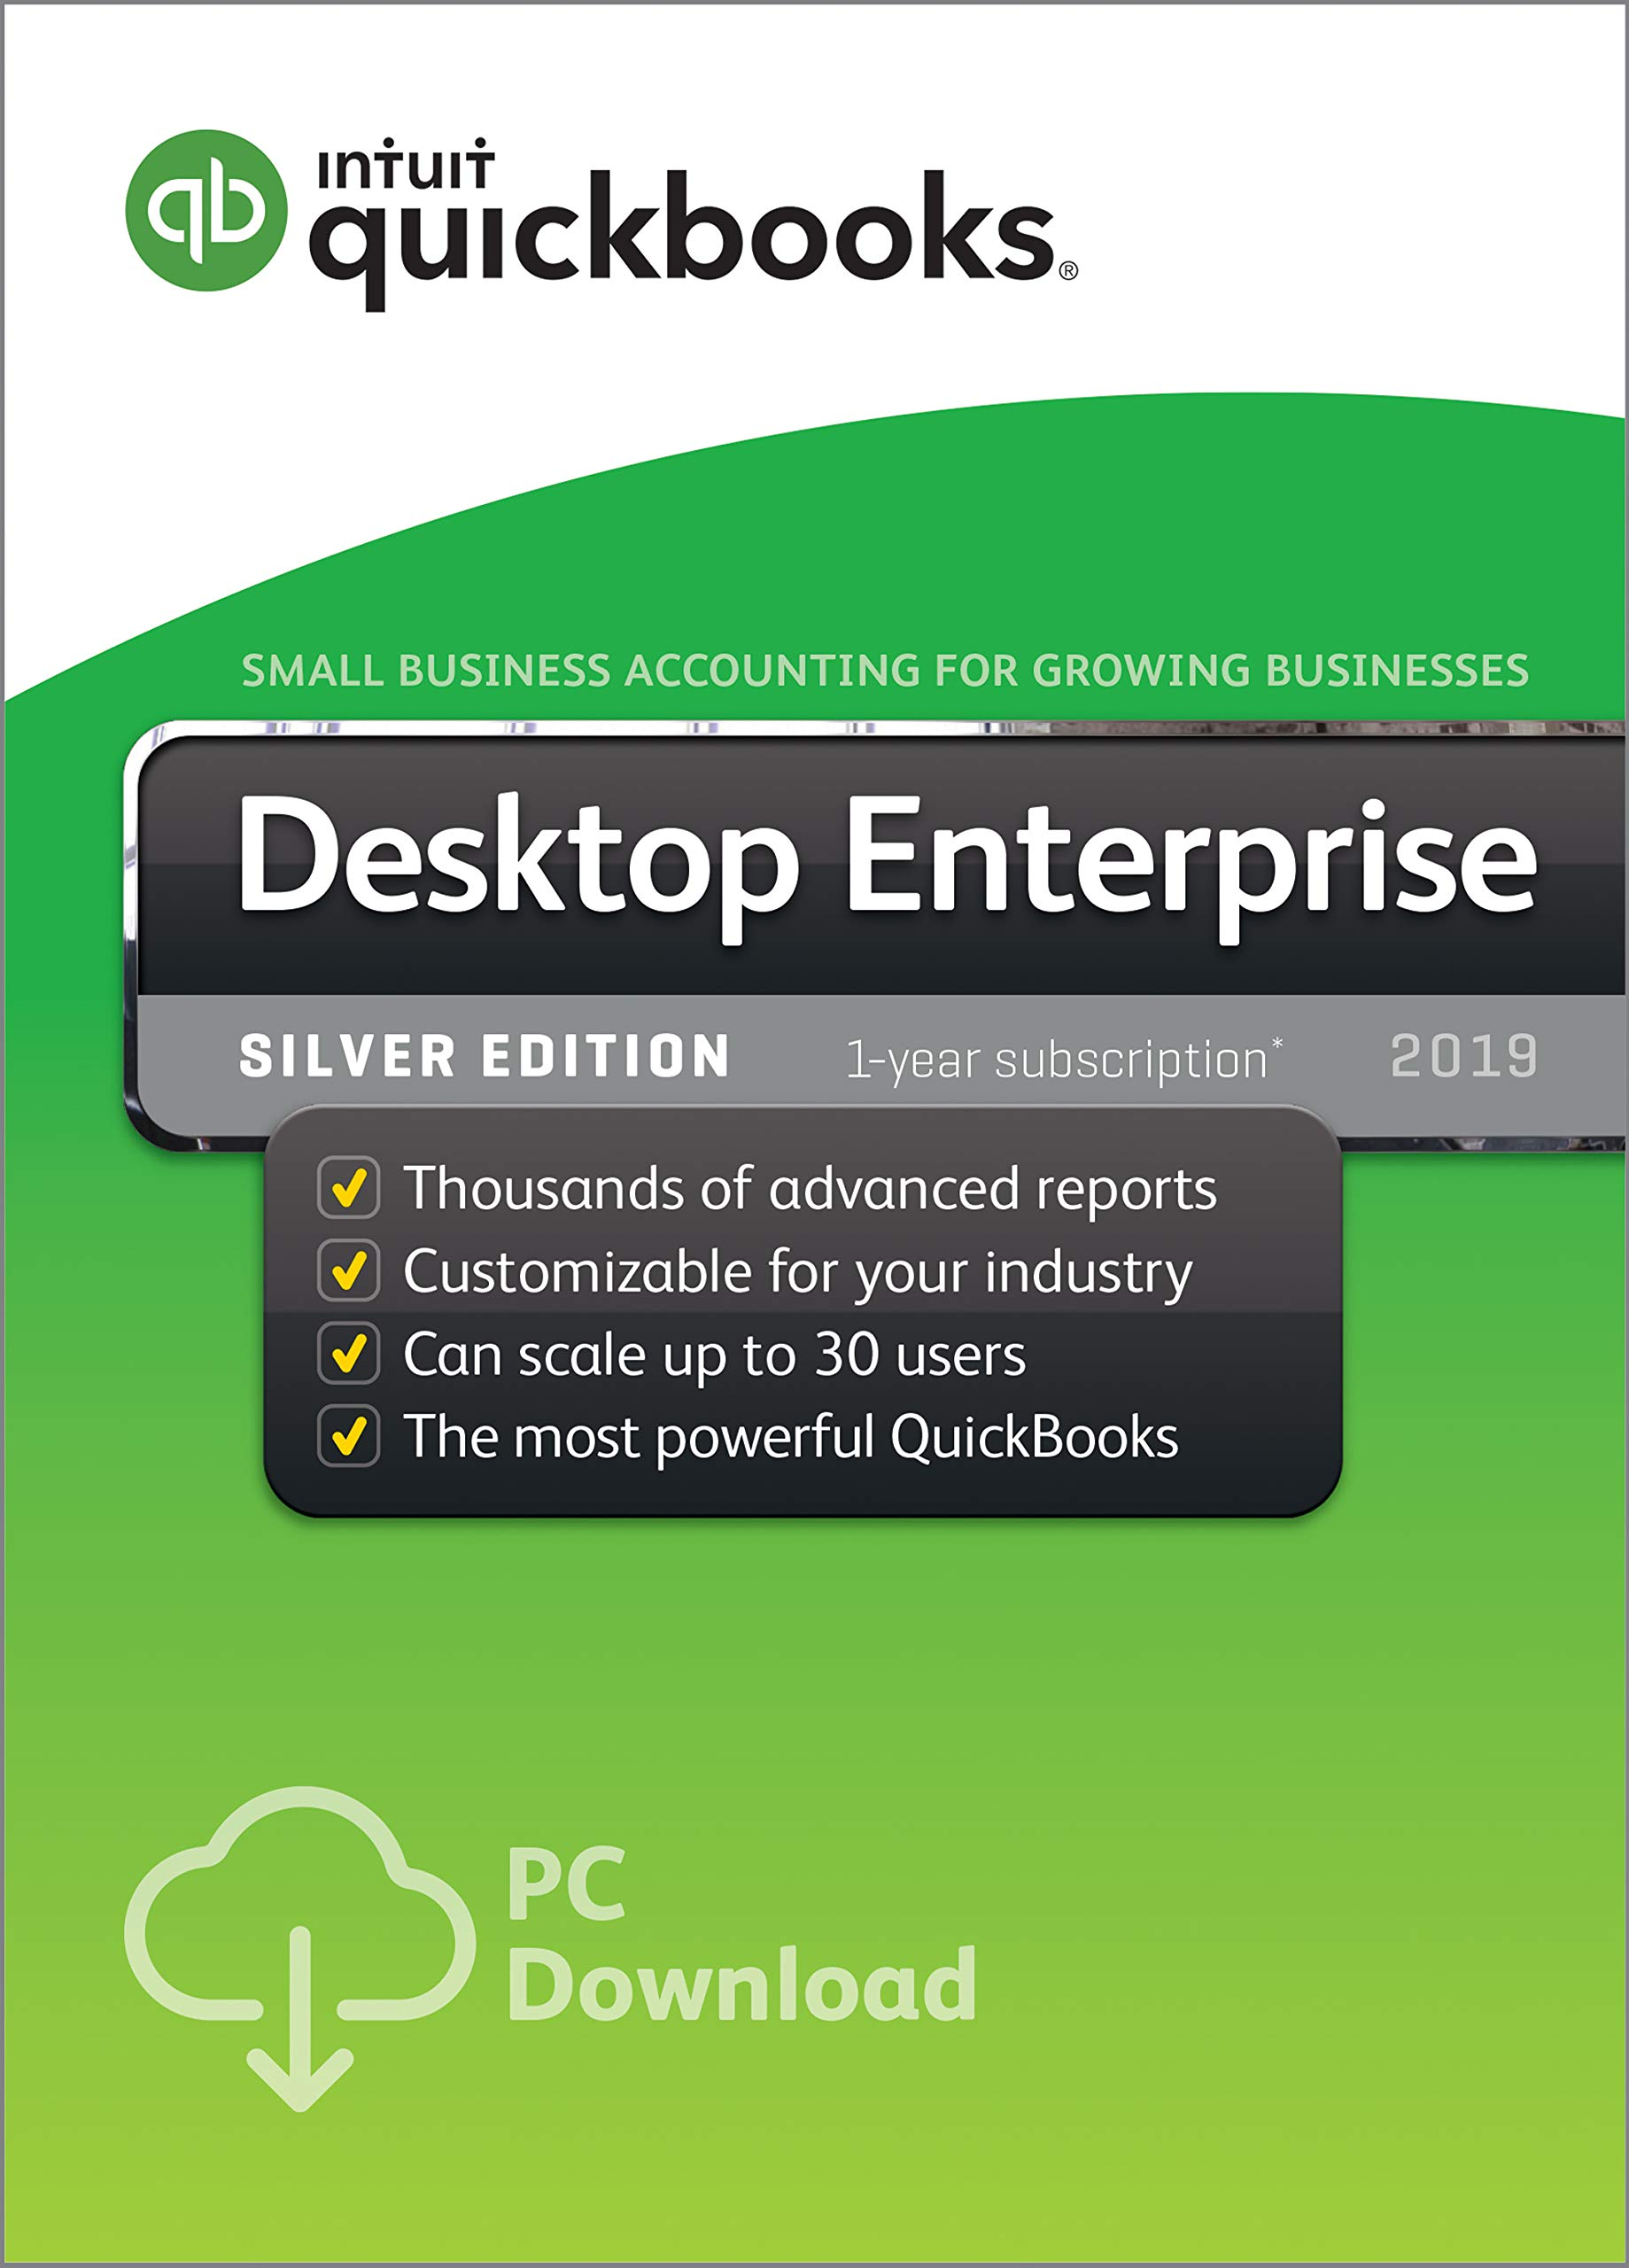 QuickBooks Desktop Enterprise Silver 2019, 5 User, 1 Year Subscription [PC Download] by Intuit